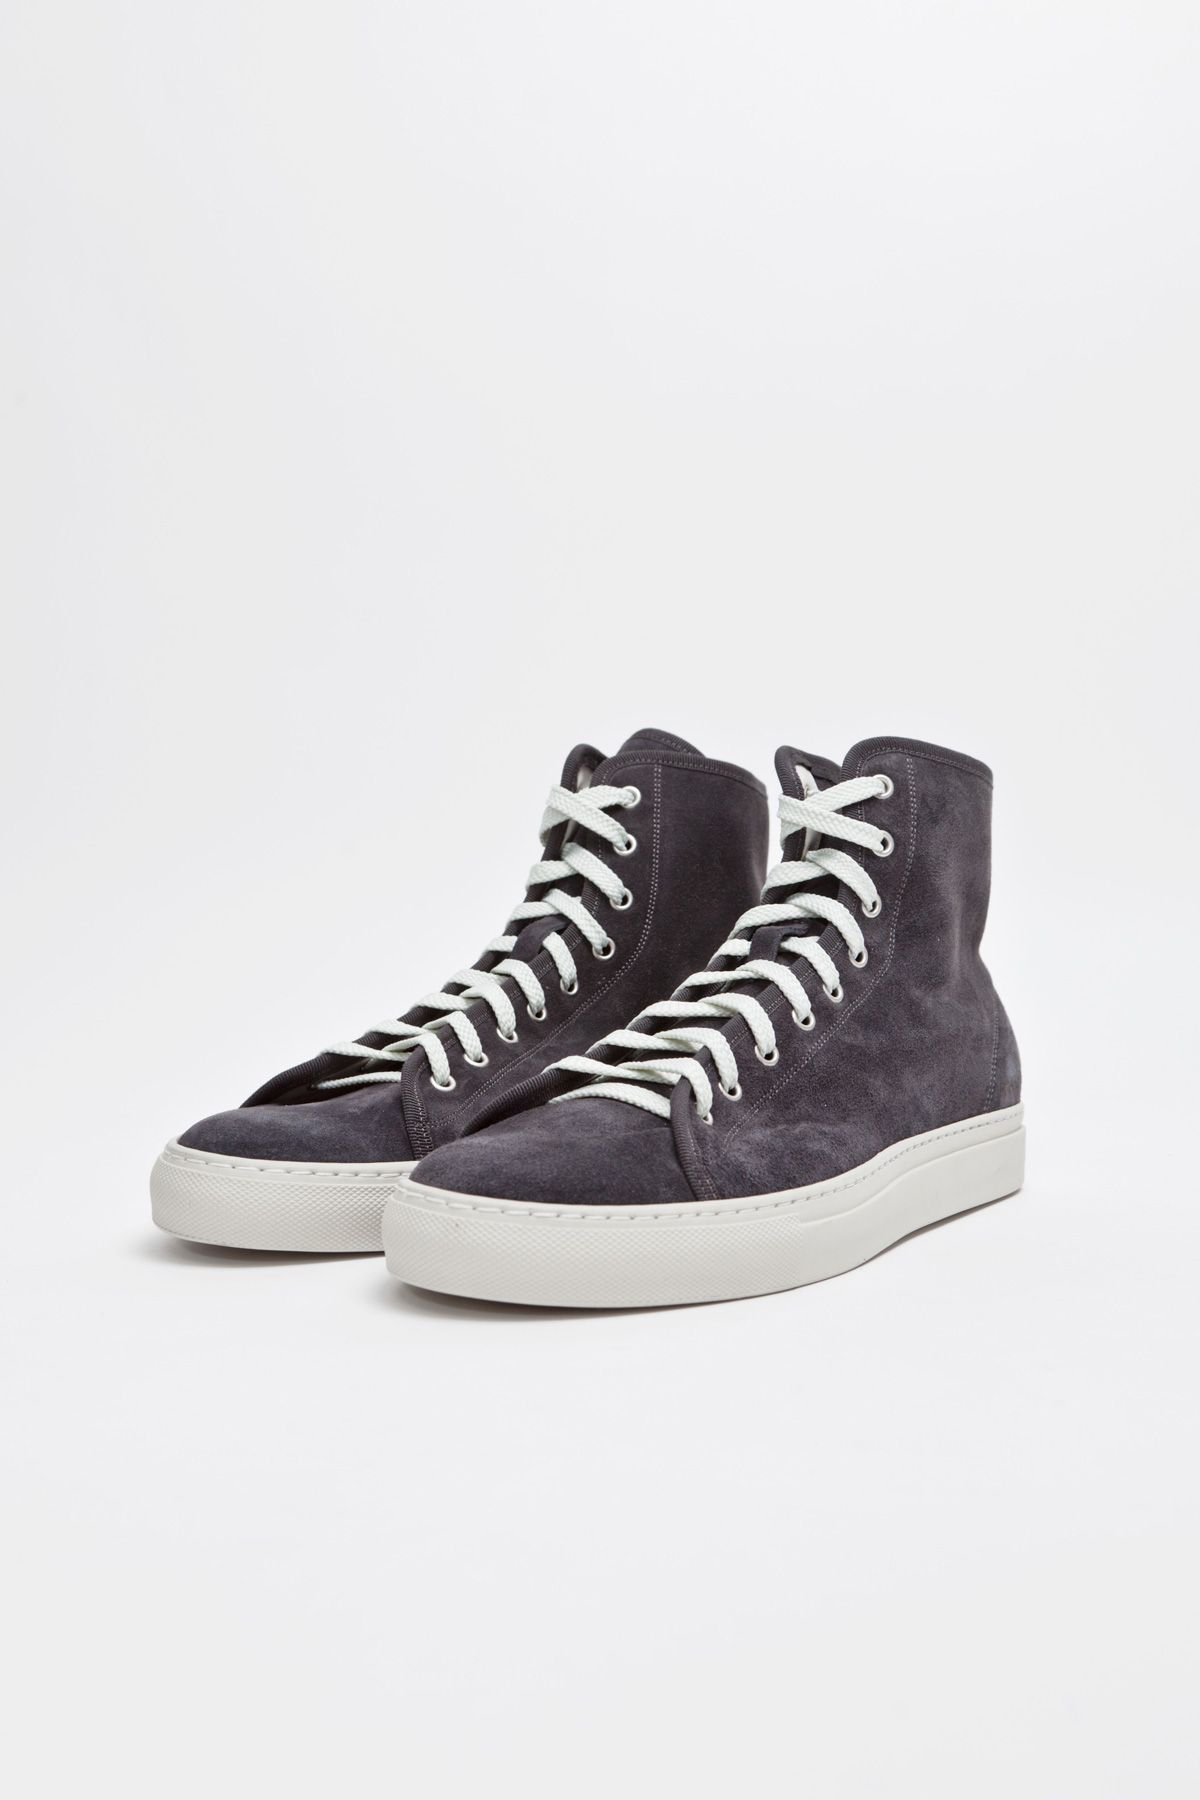 6d5b9a19a94b Common Projects - Tournament High Suede Black.